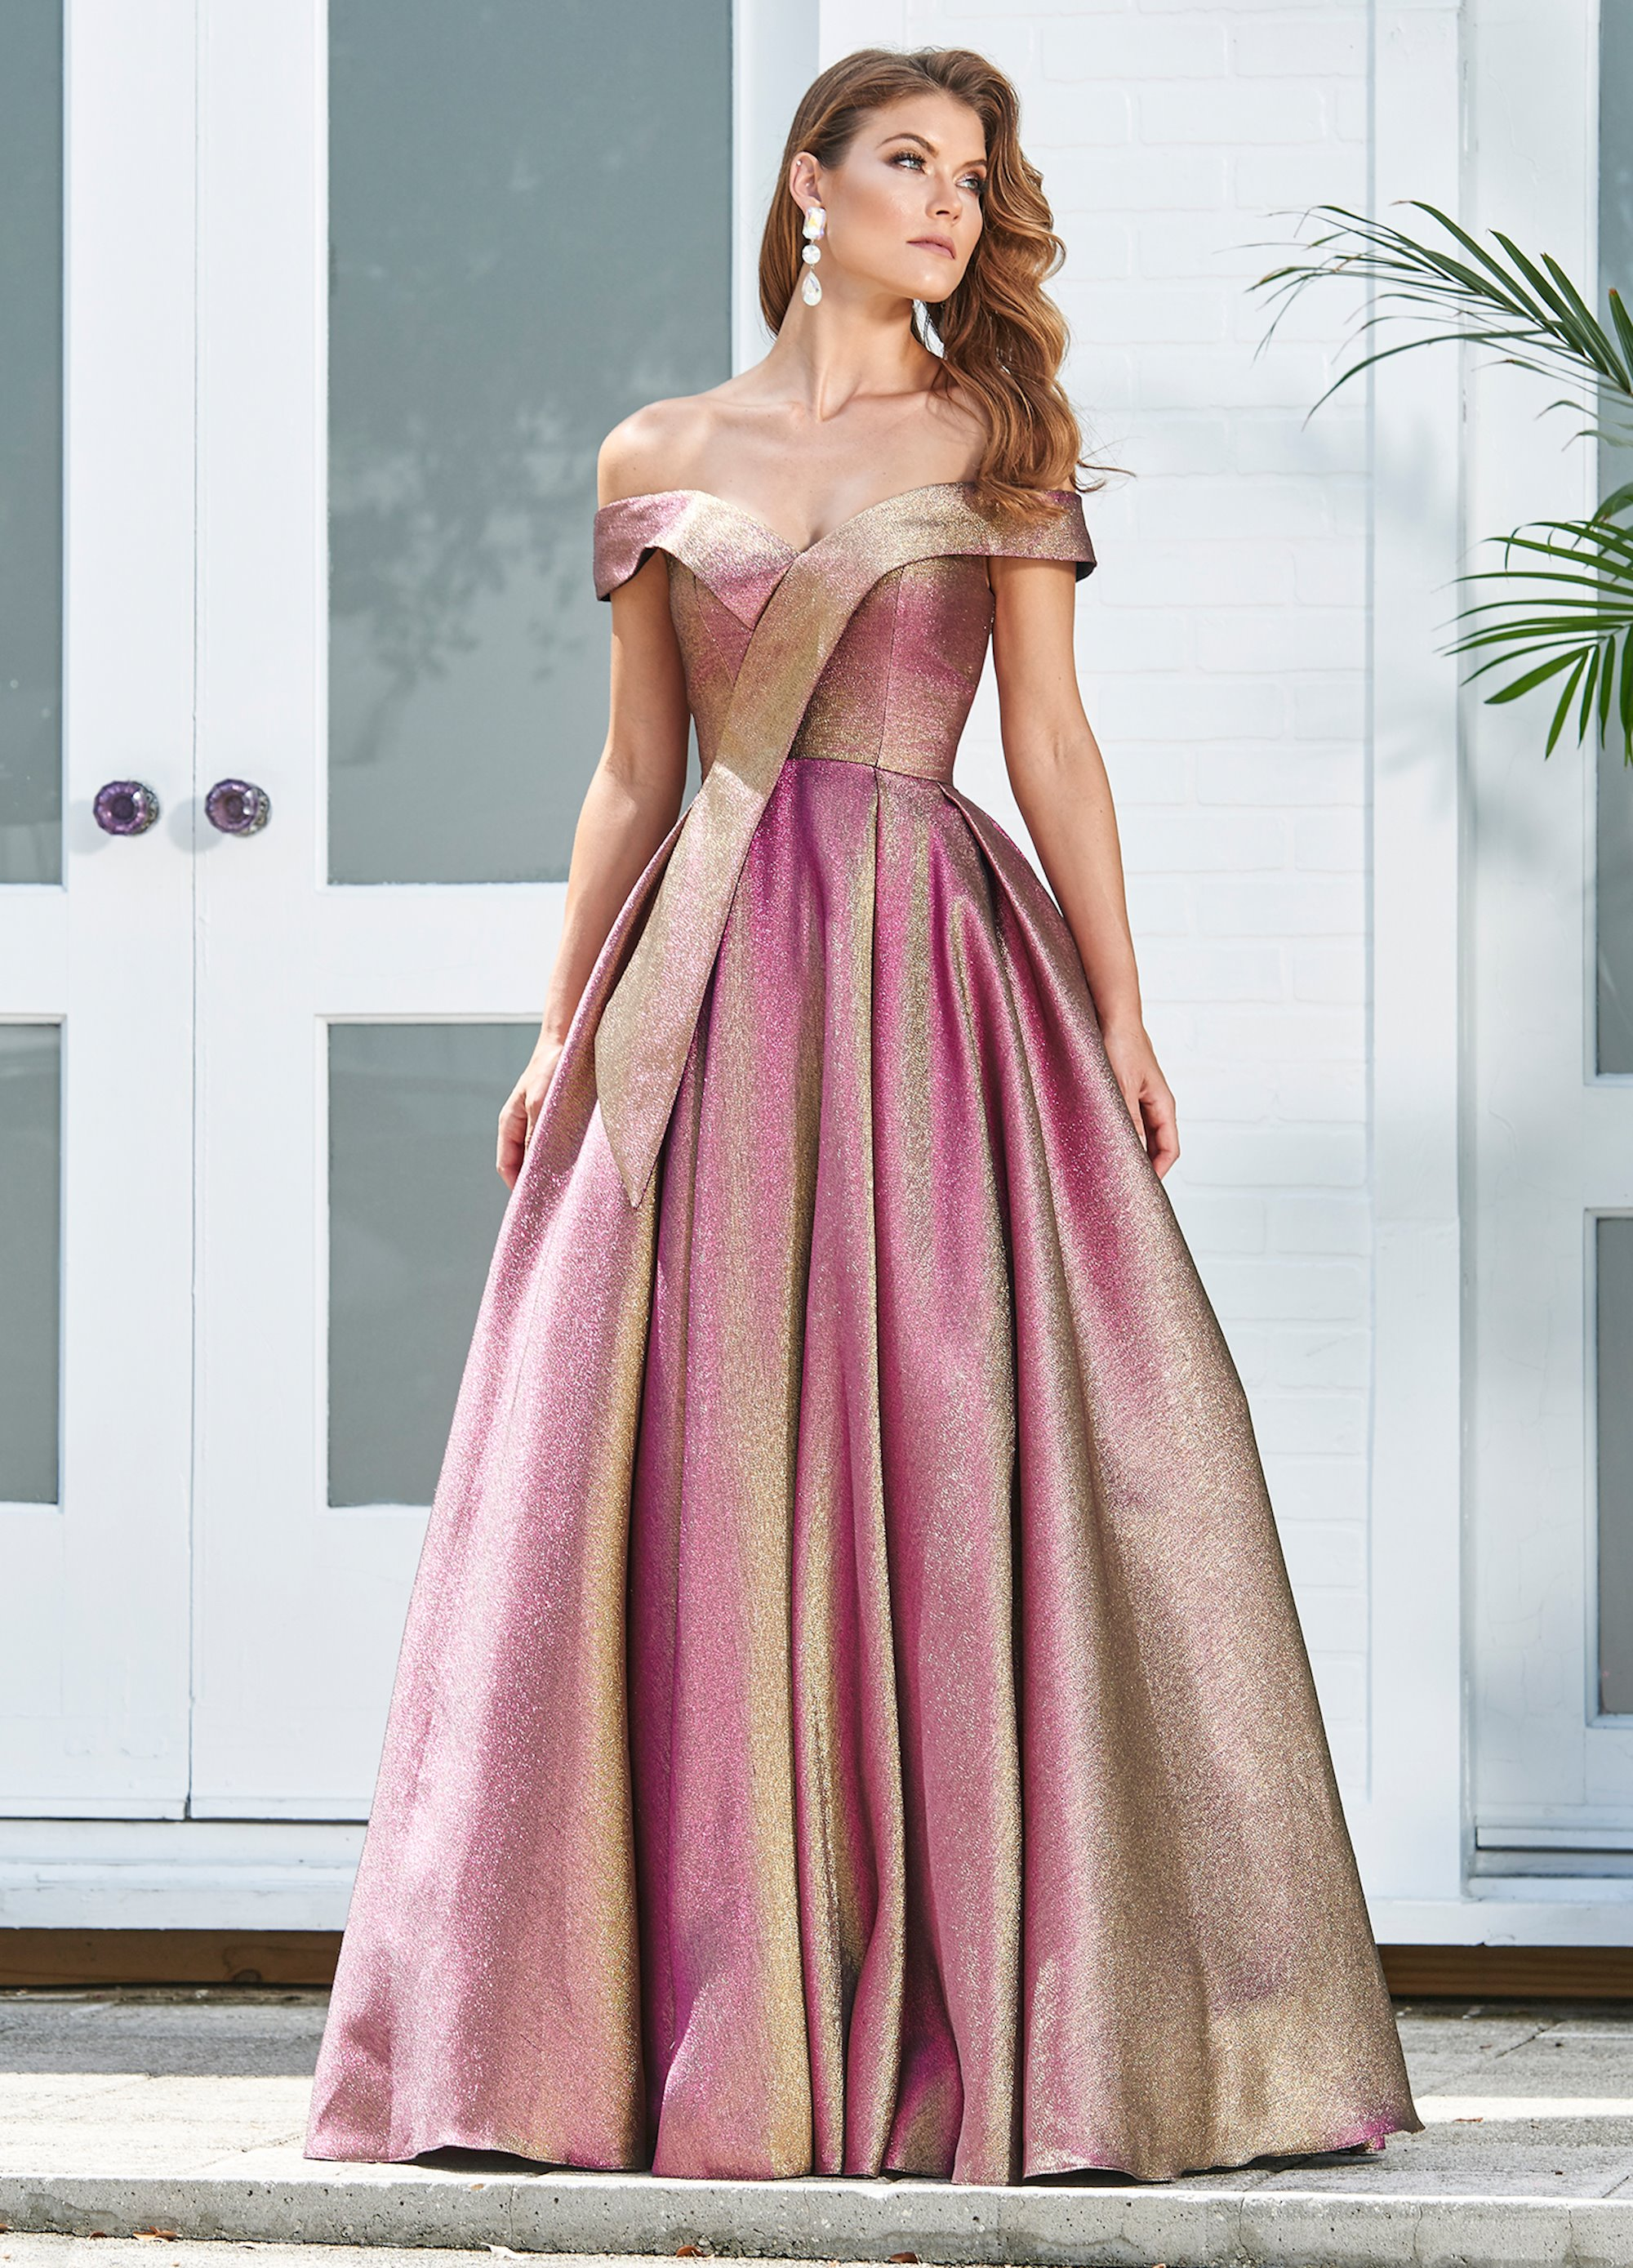 ed9e169a148e Ashley Lauren Metallic Off Shoulder Ball Gown. Double tap to zoom